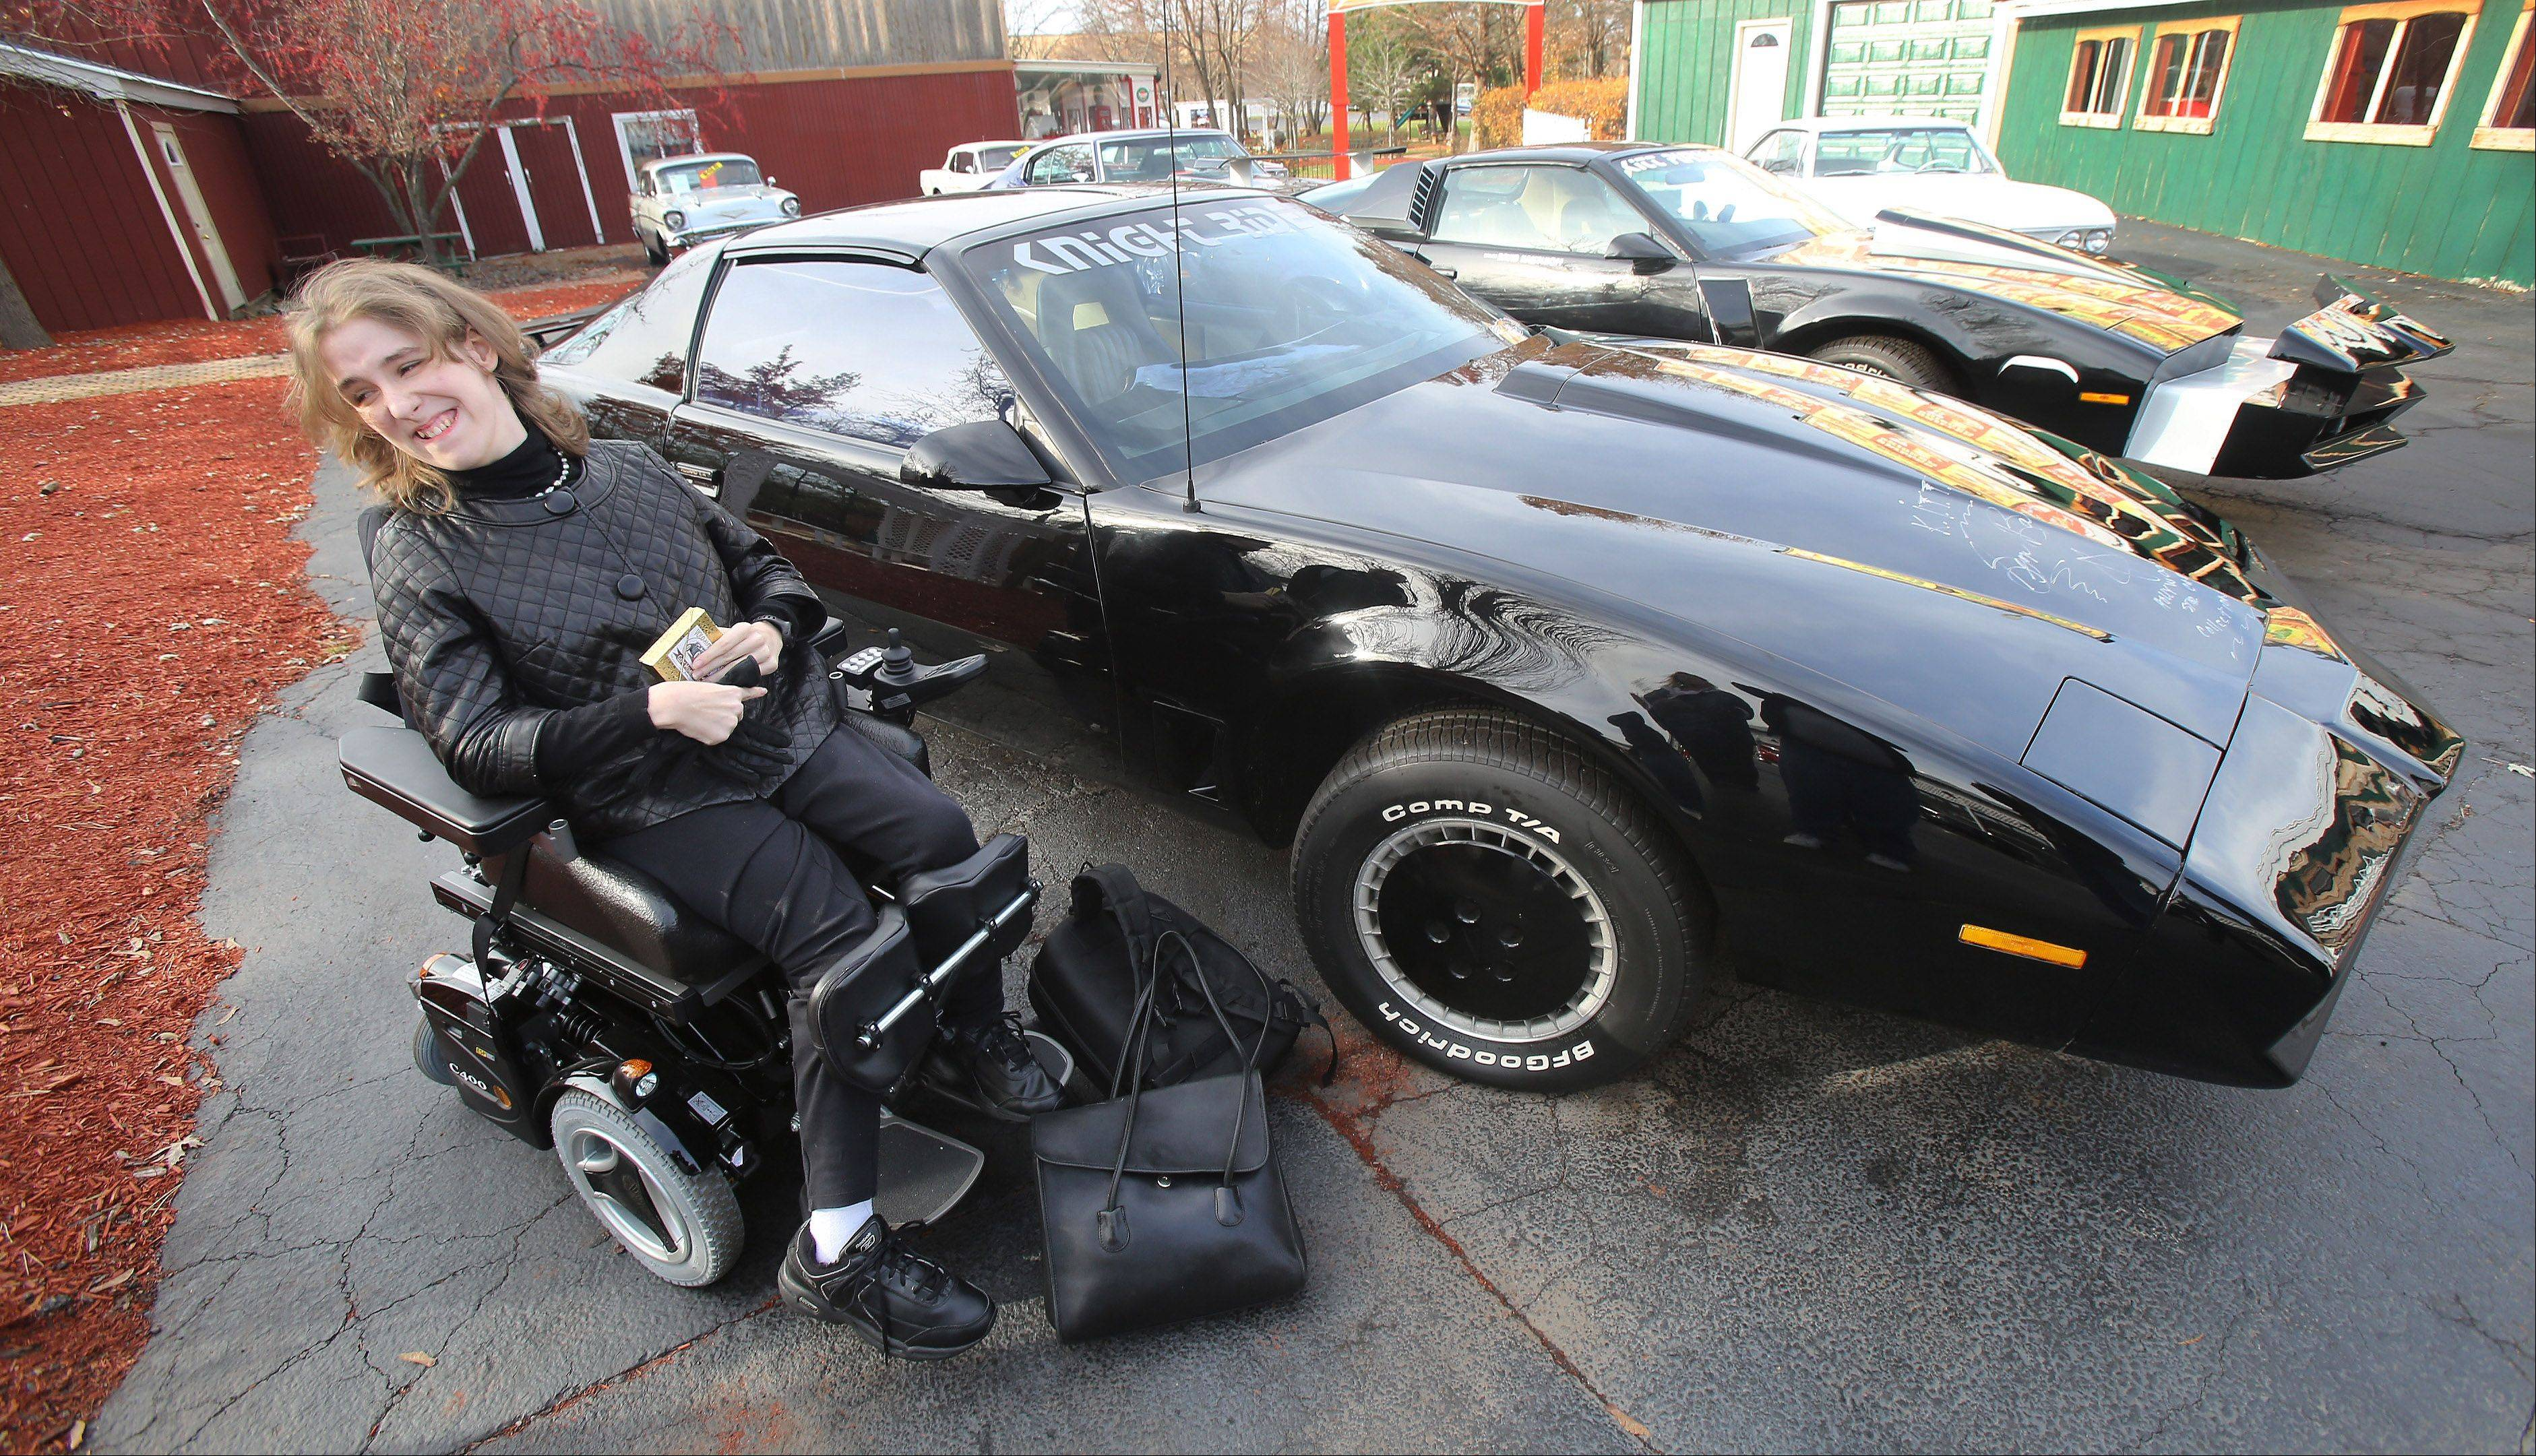 """Knight Rider"" fan Dawn Kennison of Wisconsin is delighted to see and ride in KITT, the car from the 1980s television show, at the Volo Auto Museum on Wednesday."